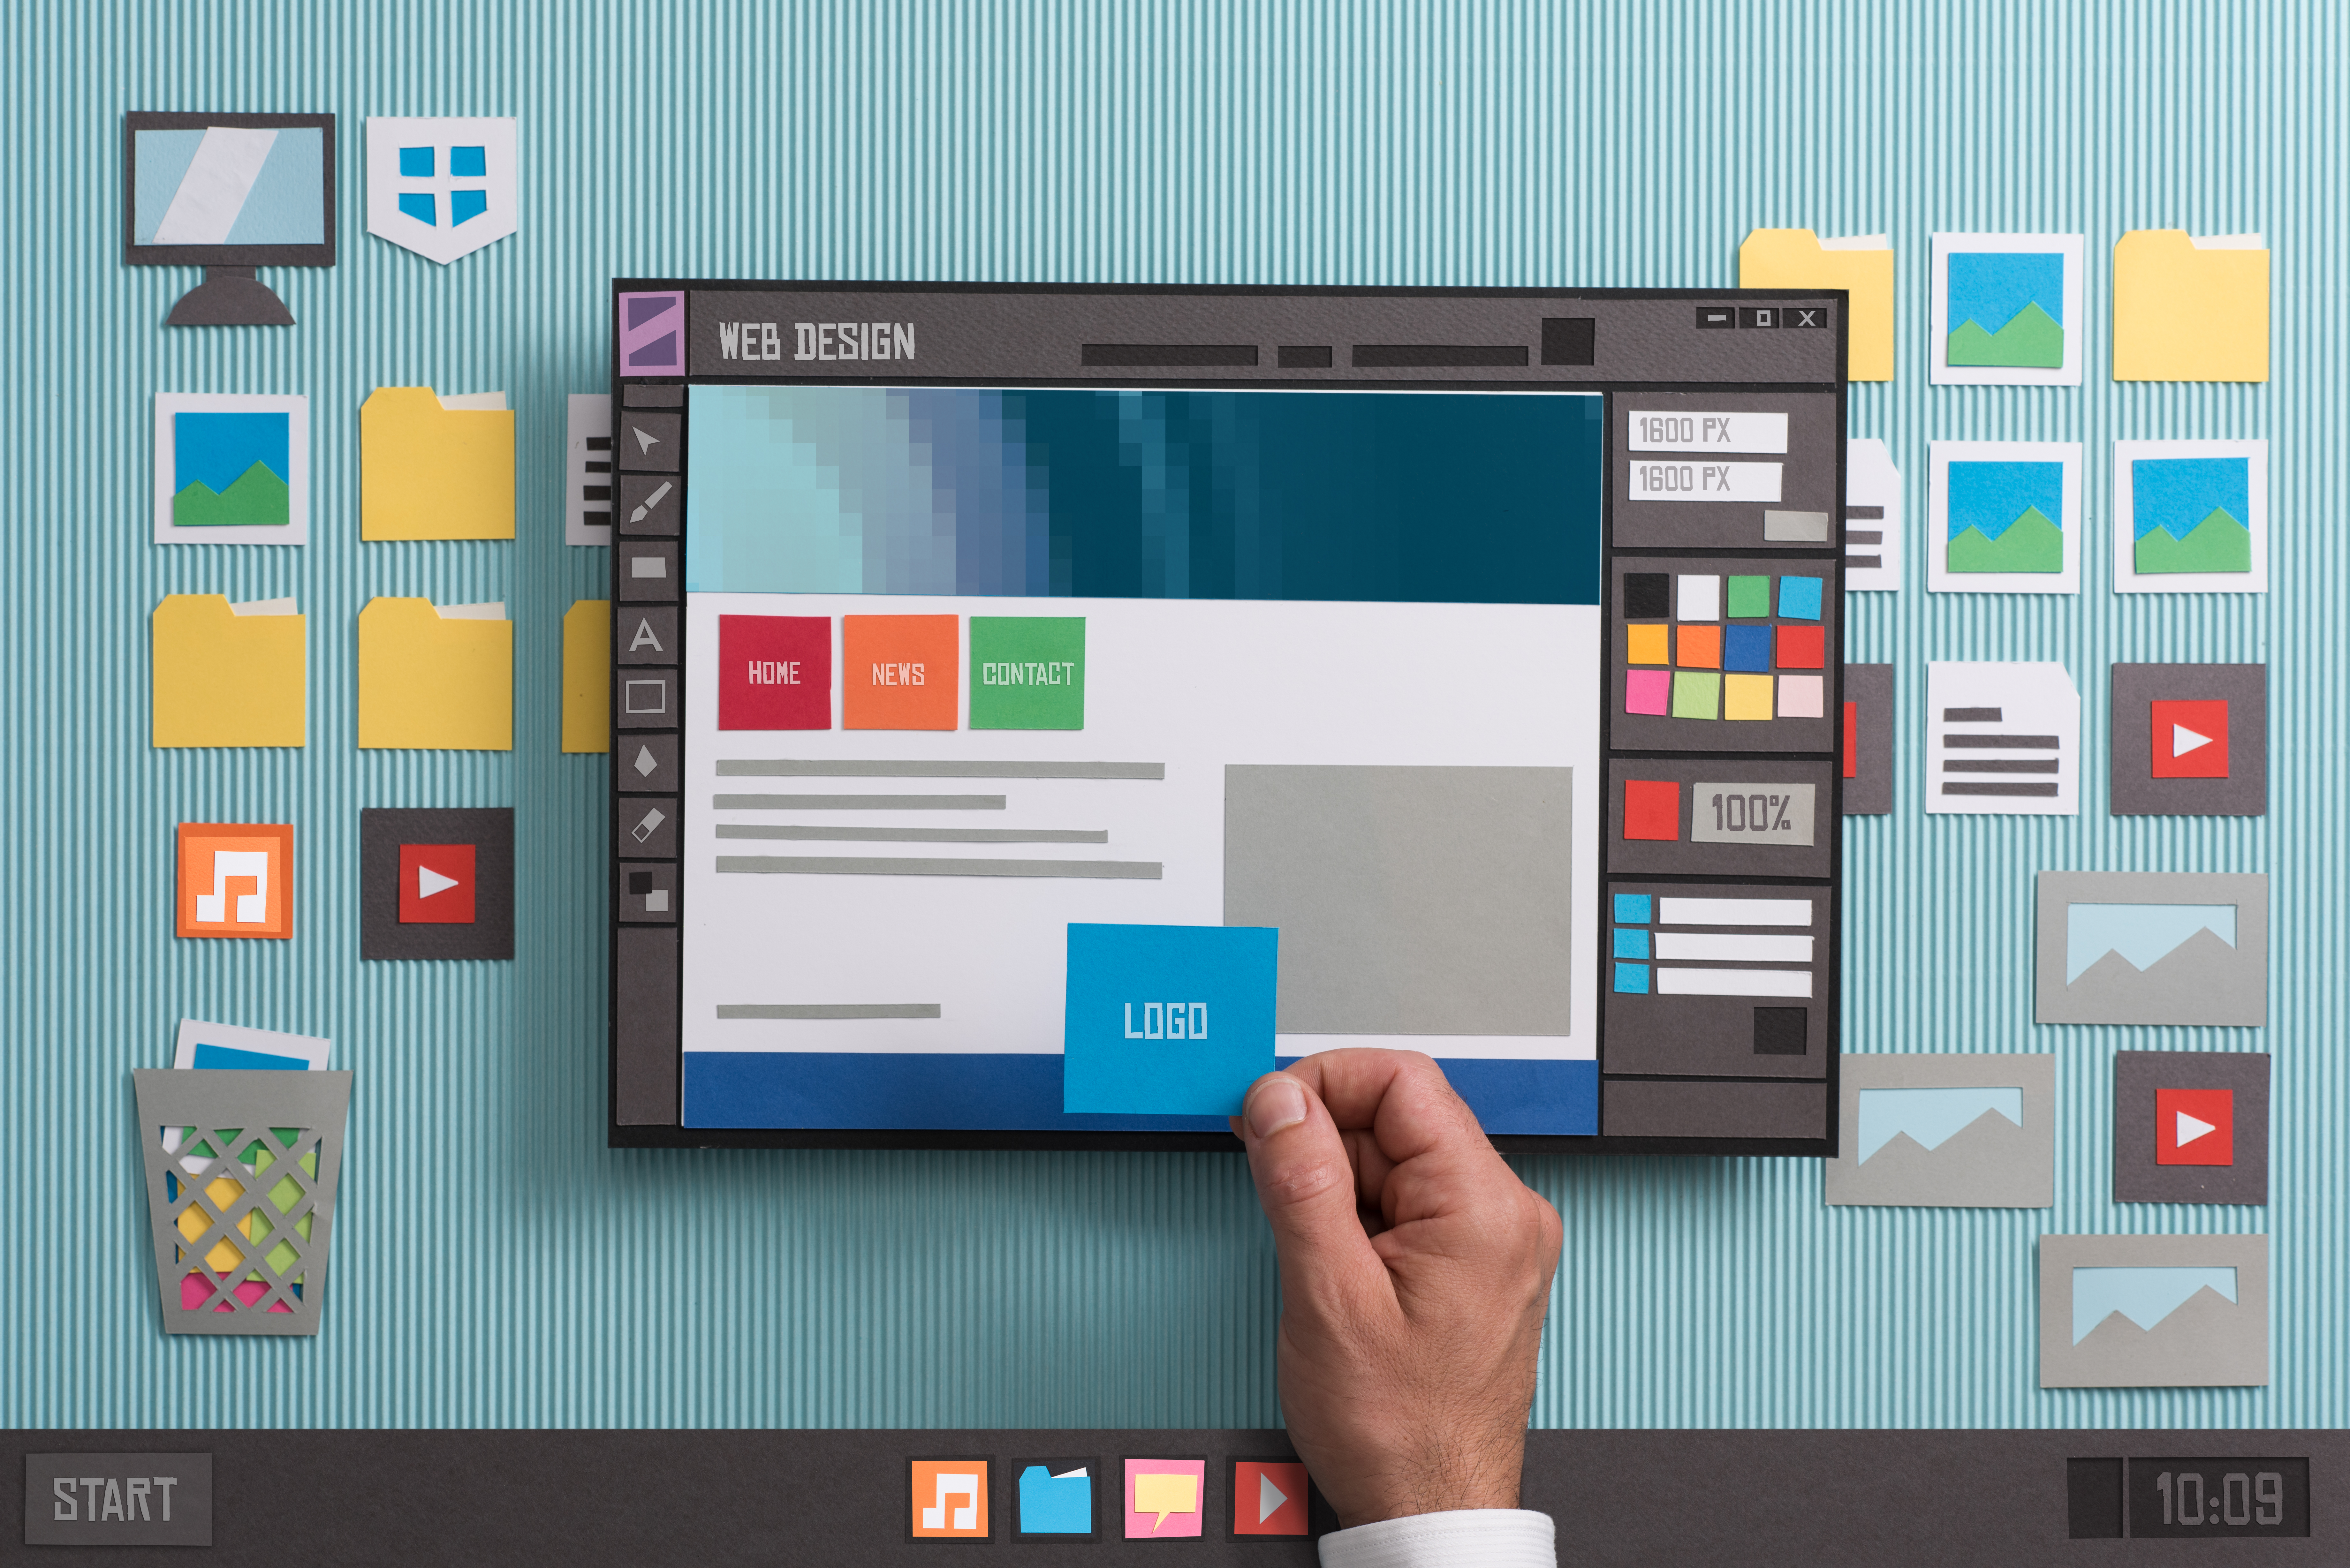 Web designer drafting web templates and web page layouts using a professional software, collage and paper cut composition